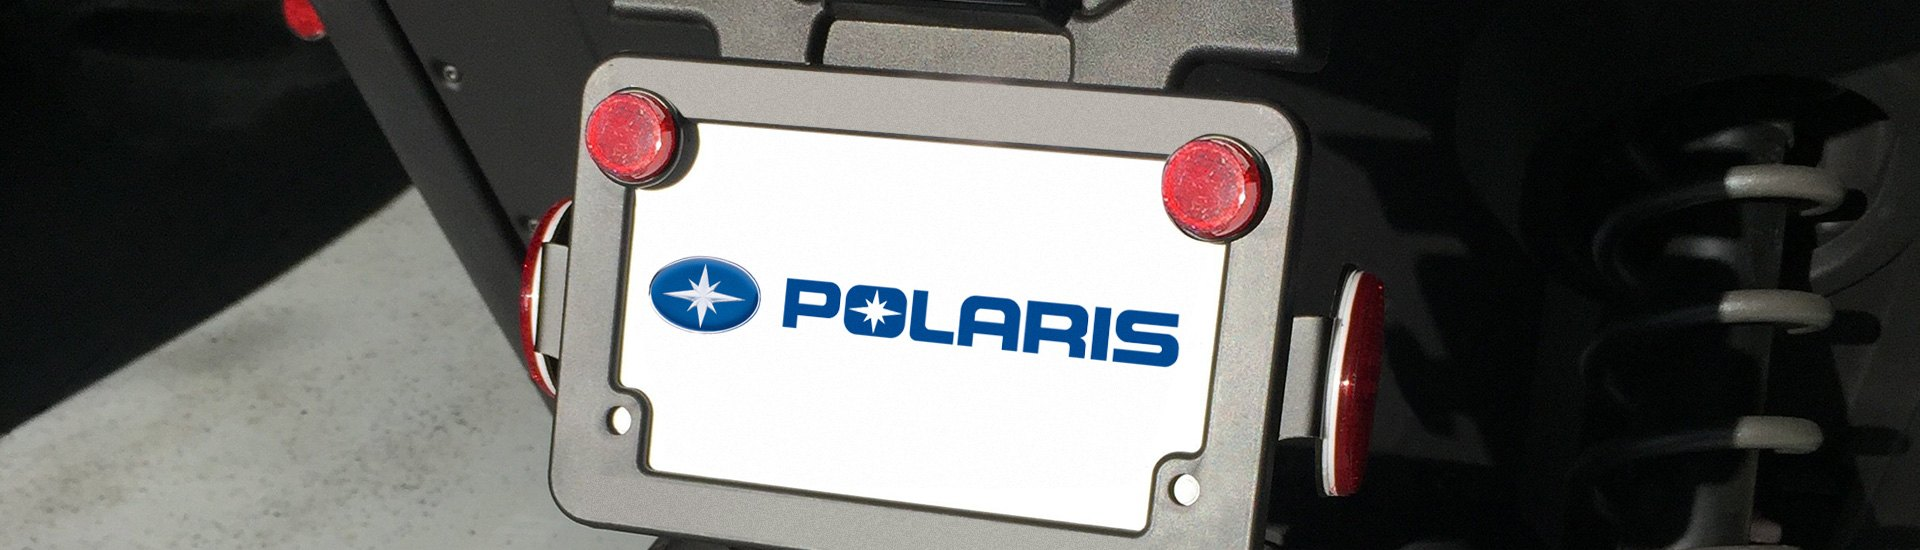 Polaris Powersports License Plates & Accessories | Holders